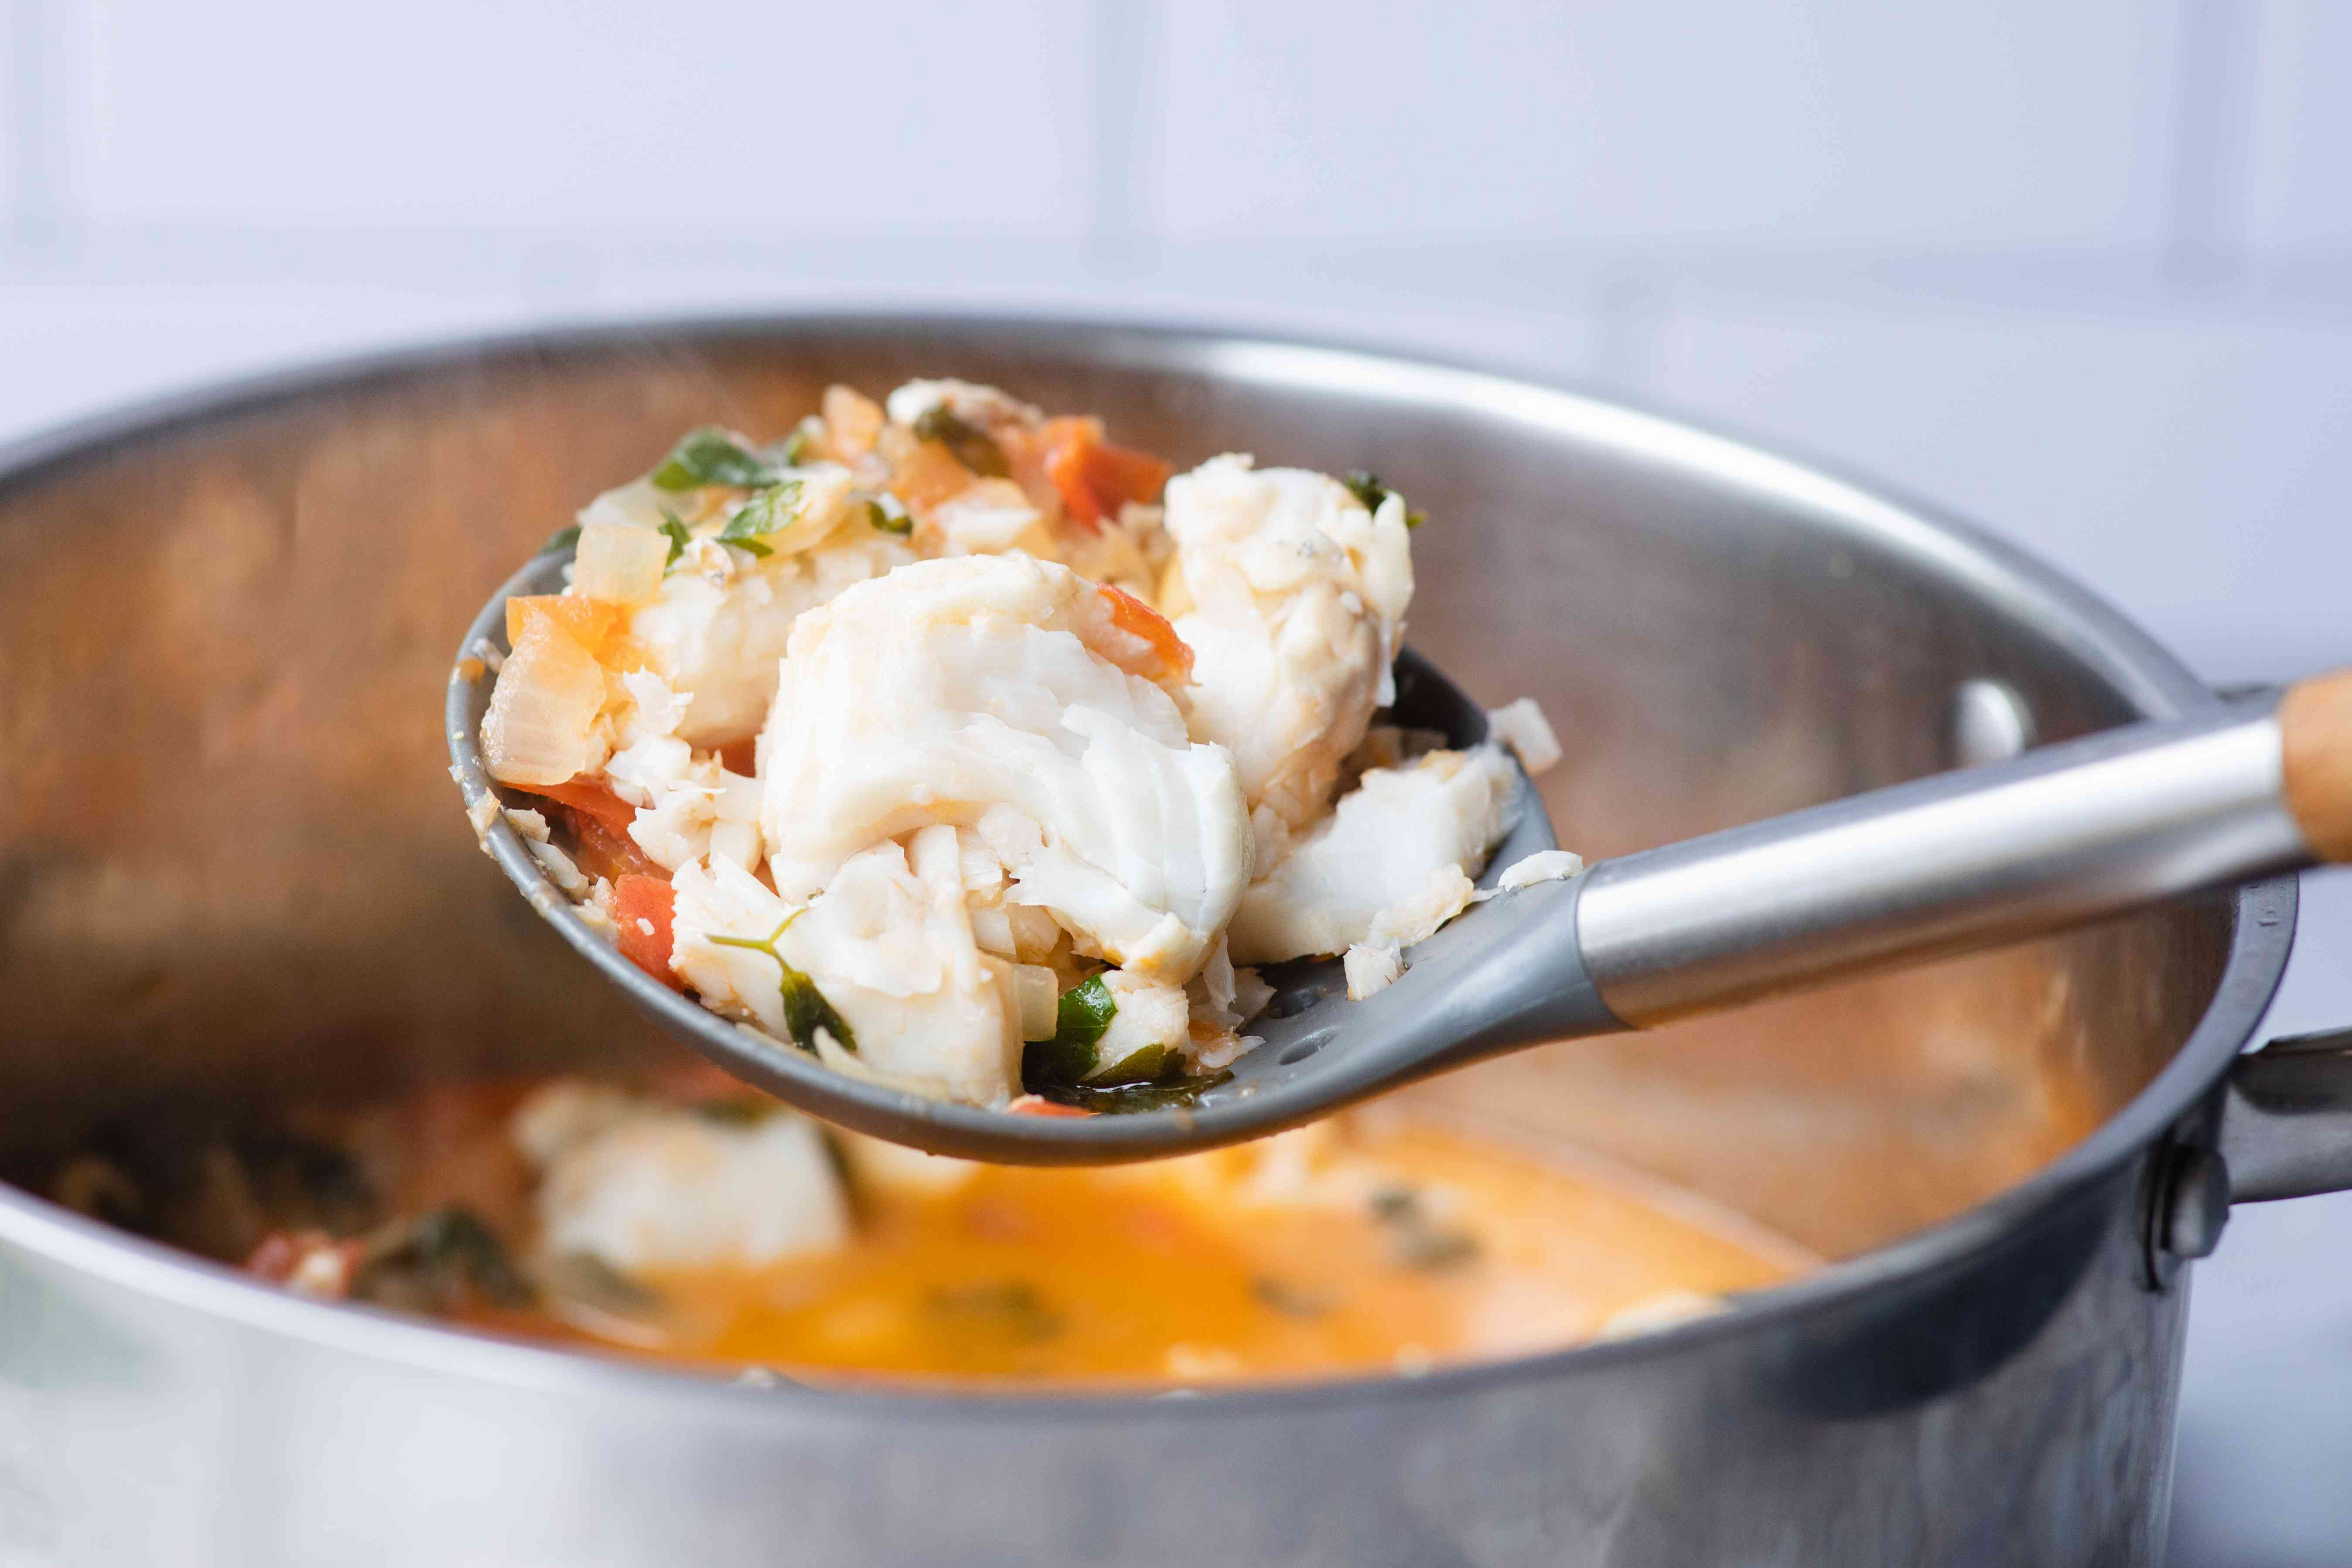 Ladling fish soup out of a pot.